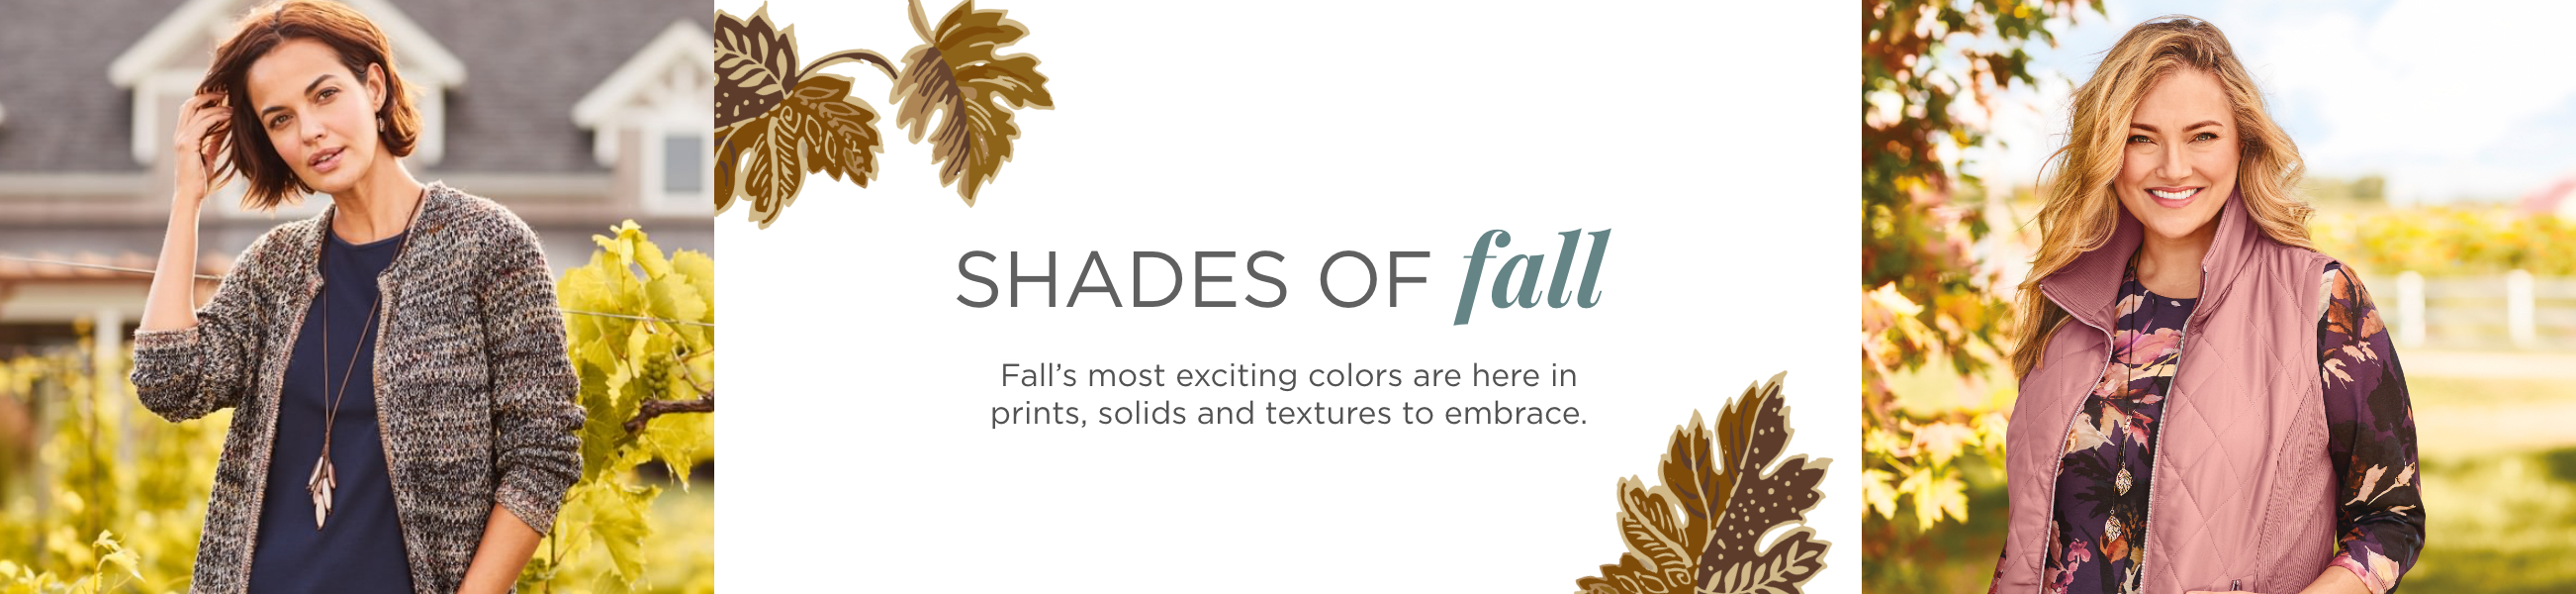 Shades of Fall. Fall's most exciting colors are here in prints, solids, and textures to embrace.